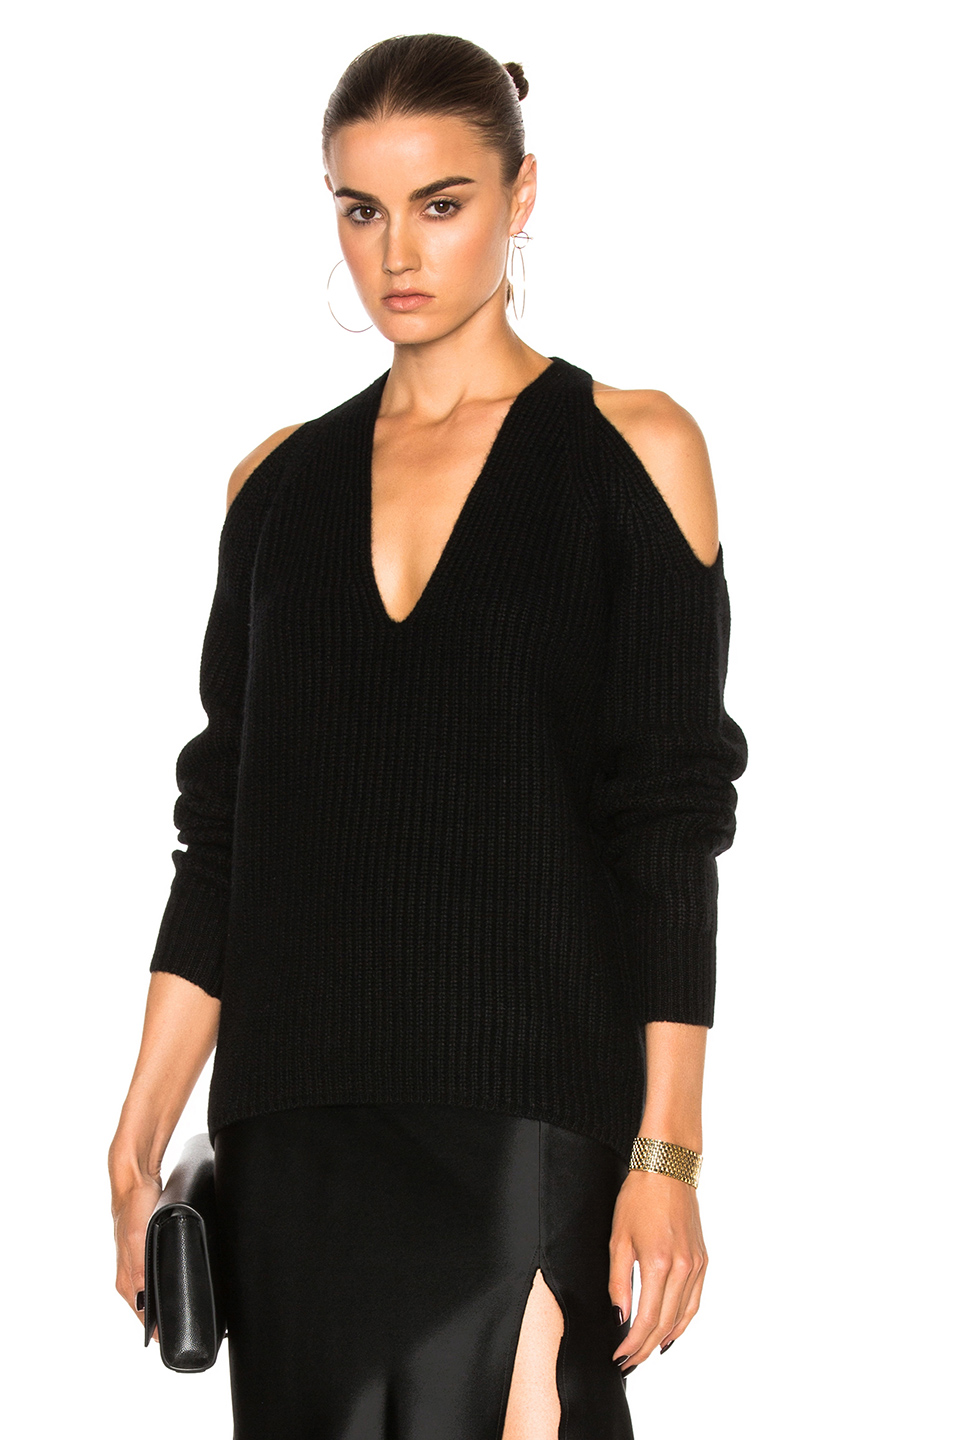 Nili Lotan Cashmere Celeste Sweater in Black